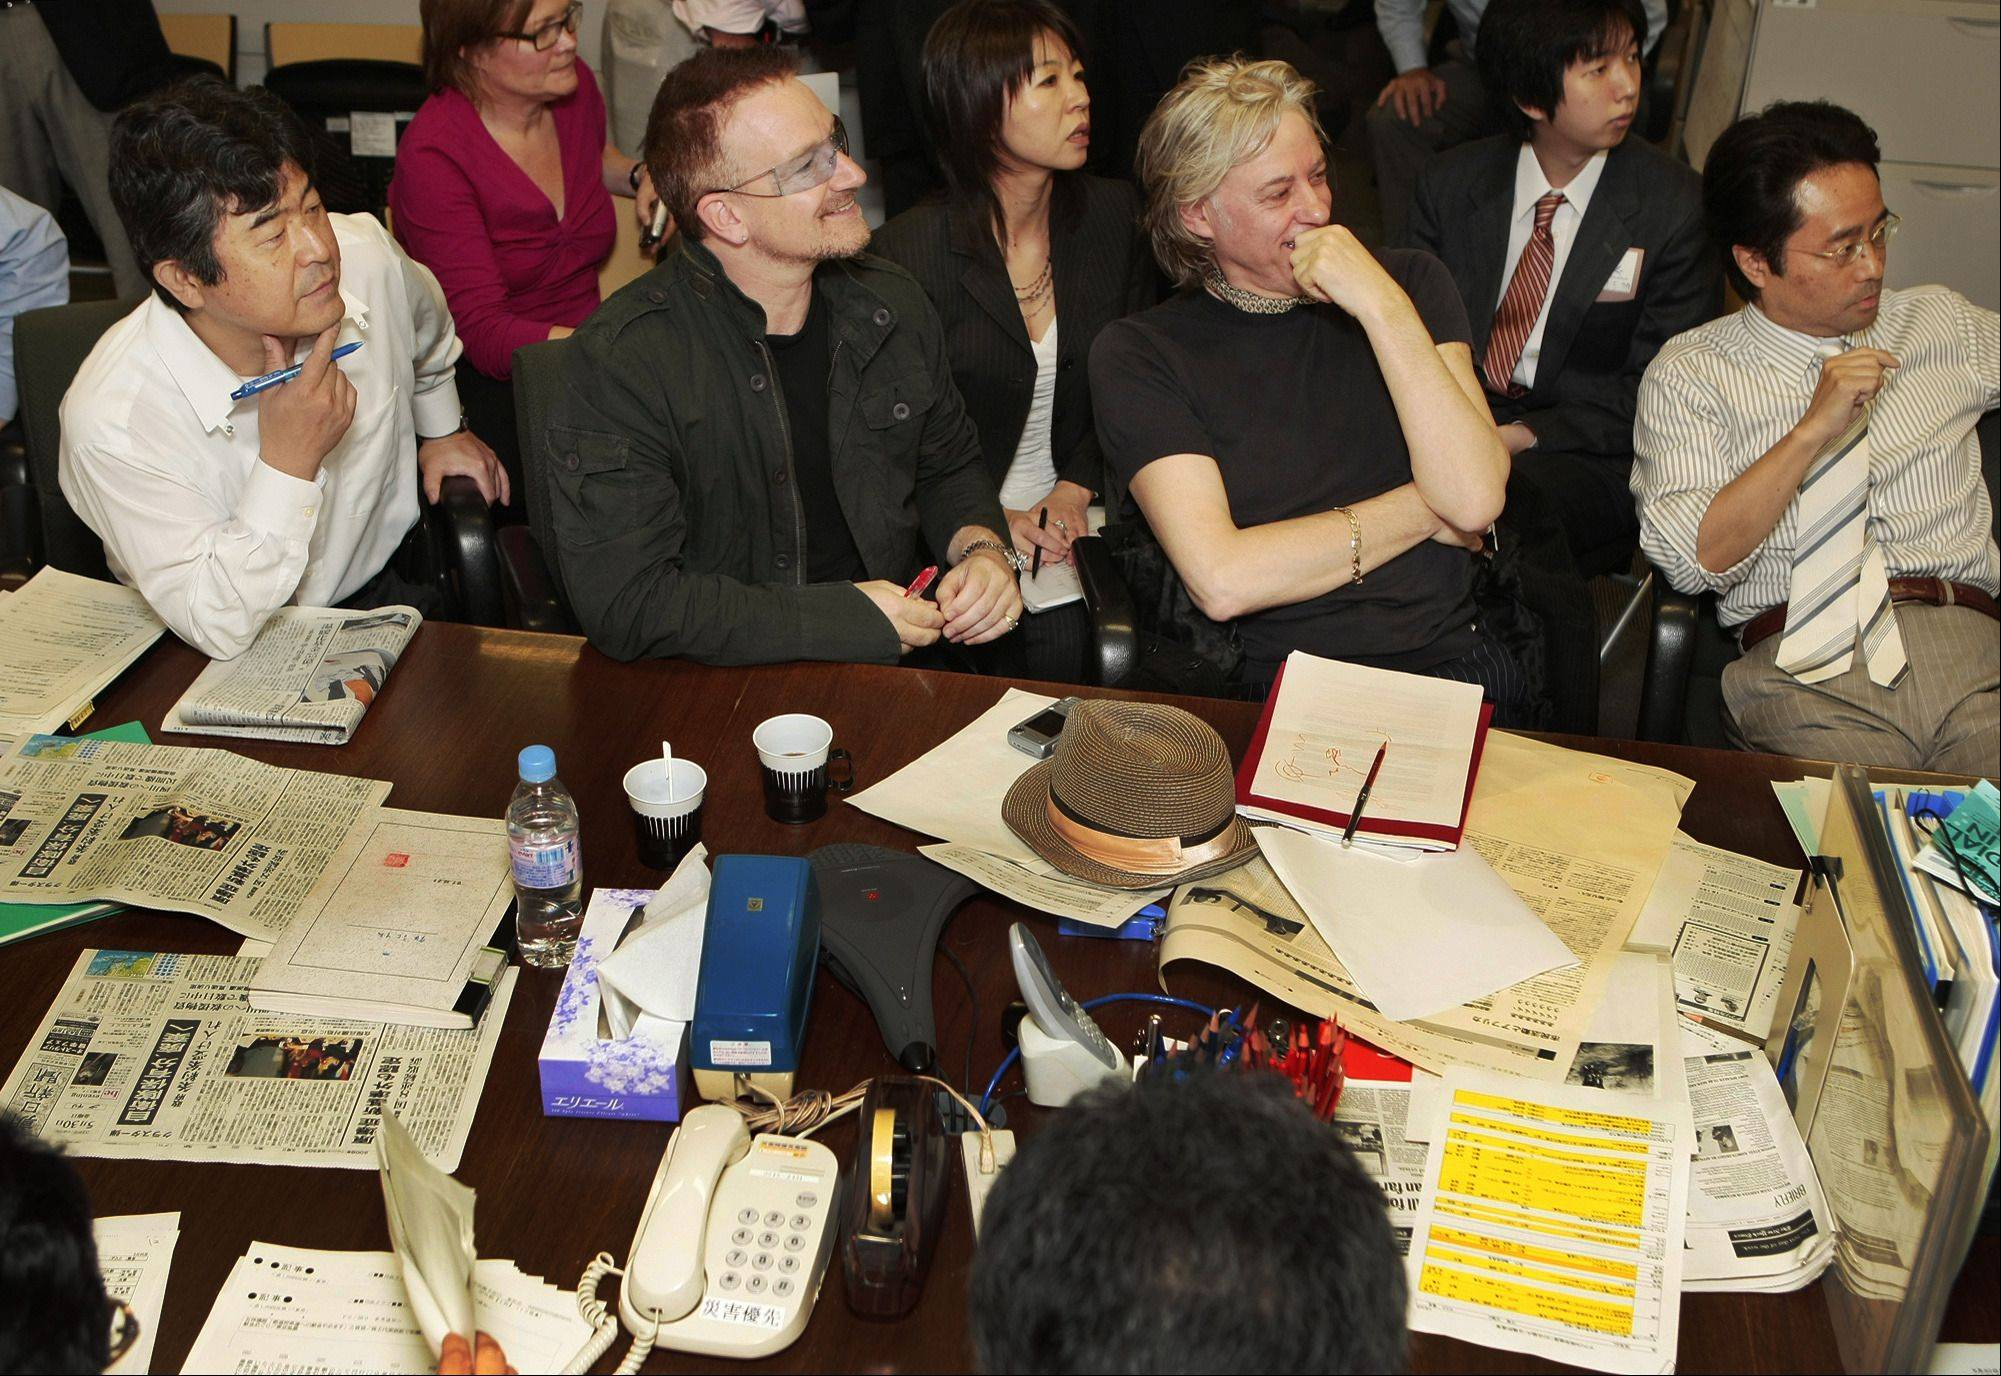 U2 frontman Bono, second left, Bob Geldof, second right, Asahi Shimbun general editor Masahiko Yokoi, left, and deputy managing editor Yoichi Nishimura watch a screen during their editorial conference at the Asahi Shimbun Tokyo headquarters, Friday, May 30, 2008. The ubiquitous U2 frontman and fellow musician Geldof were guest editors at Japan's second-largest newspaper, the Asahi, on Friday to help organize a special edition on anti-poverty activists' favorite subject: Africa.